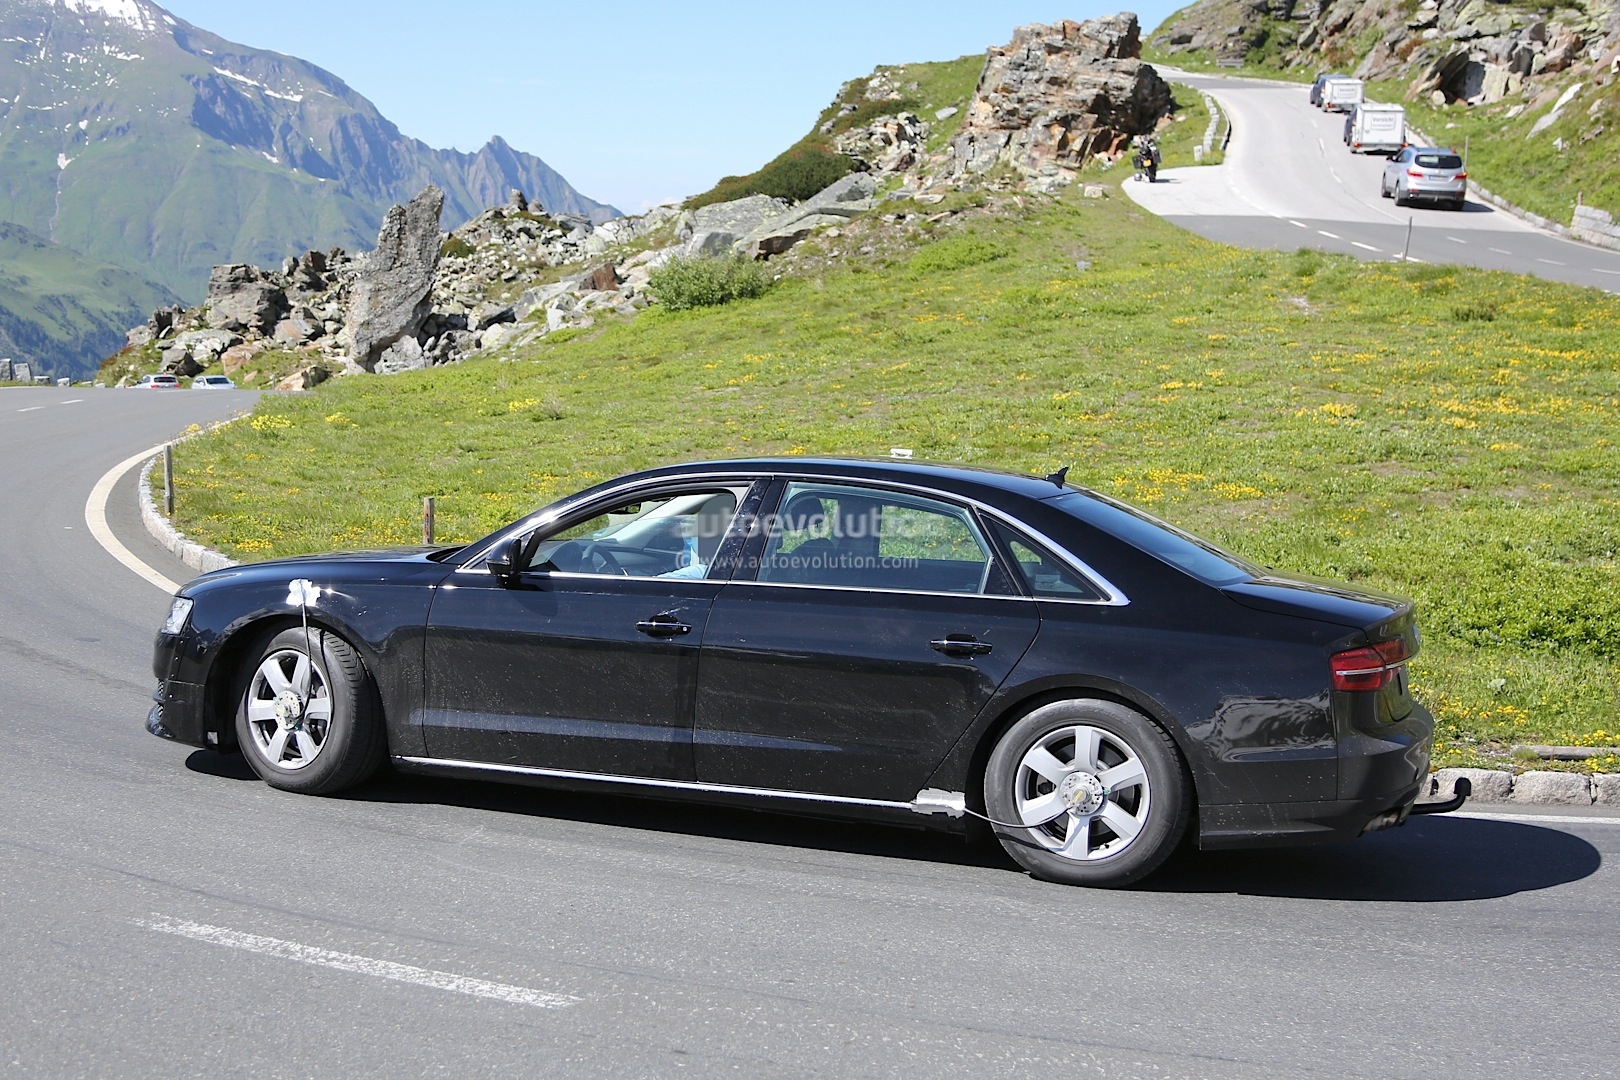 spyshots all new audi a8 for 2016 captured in first photos autoevolution. Black Bedroom Furniture Sets. Home Design Ideas